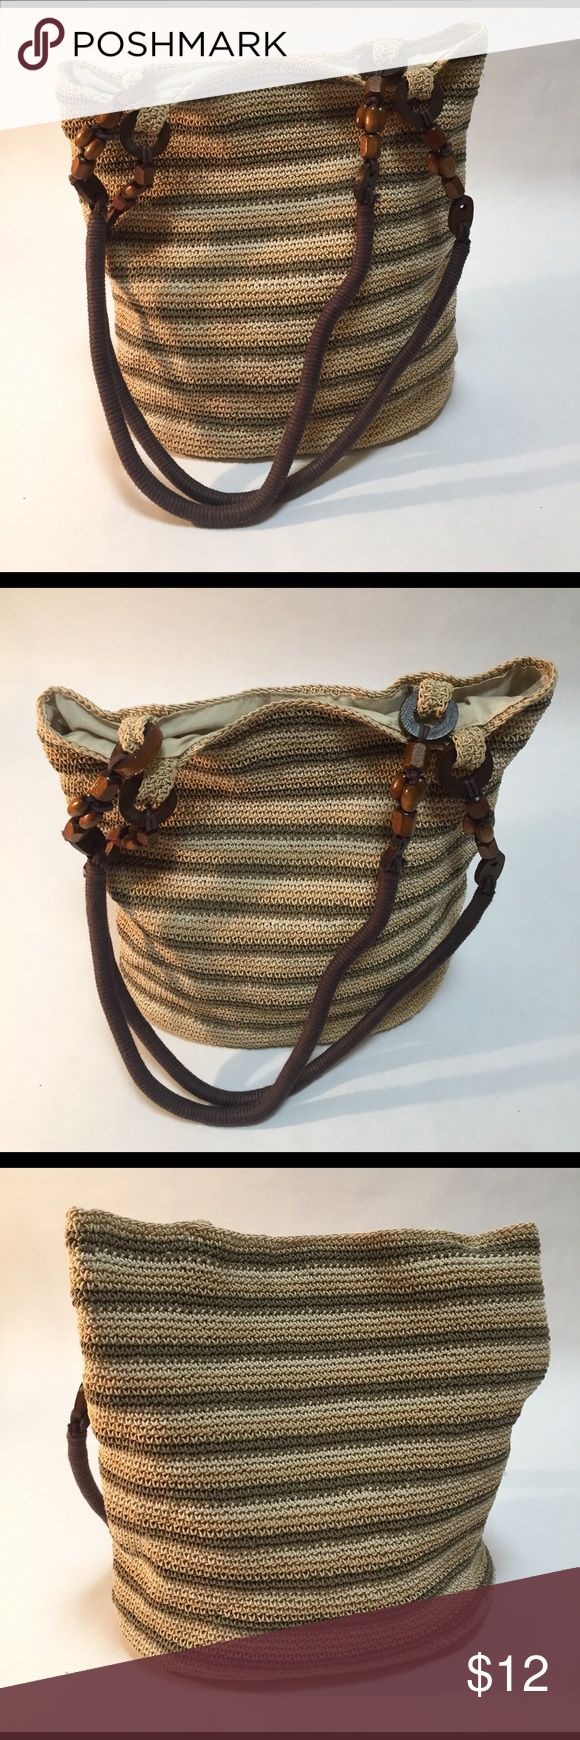 """💋""""KISS it Goodbye"""" Saturday Special 💋 Shoulder Bag by Studio Works - 60% cotton 40% rayon - base measures 10"""" Wx11""""H - wood beaded handle - colors are green, cream and tan! Excellent condition! Studio Works Bags Shoulder Bags"""